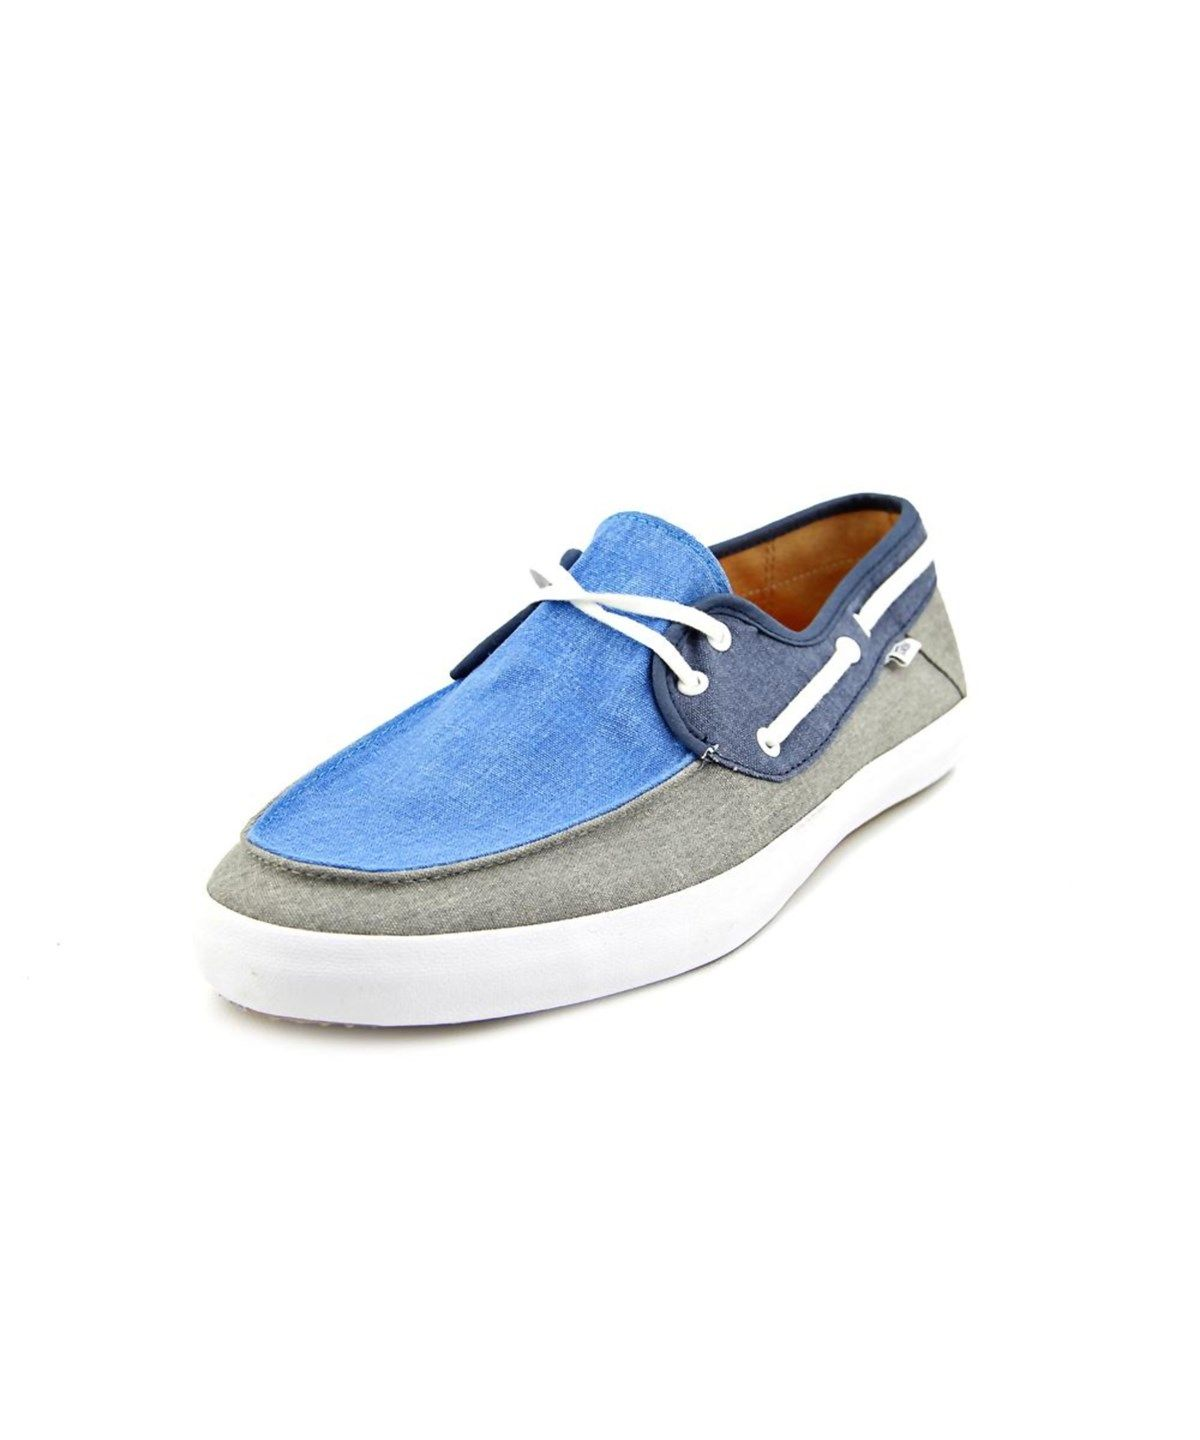 VANS VANS CHAUFFEUR MOC TOE CANVAS BOAT SHOE'. #vans #shoes